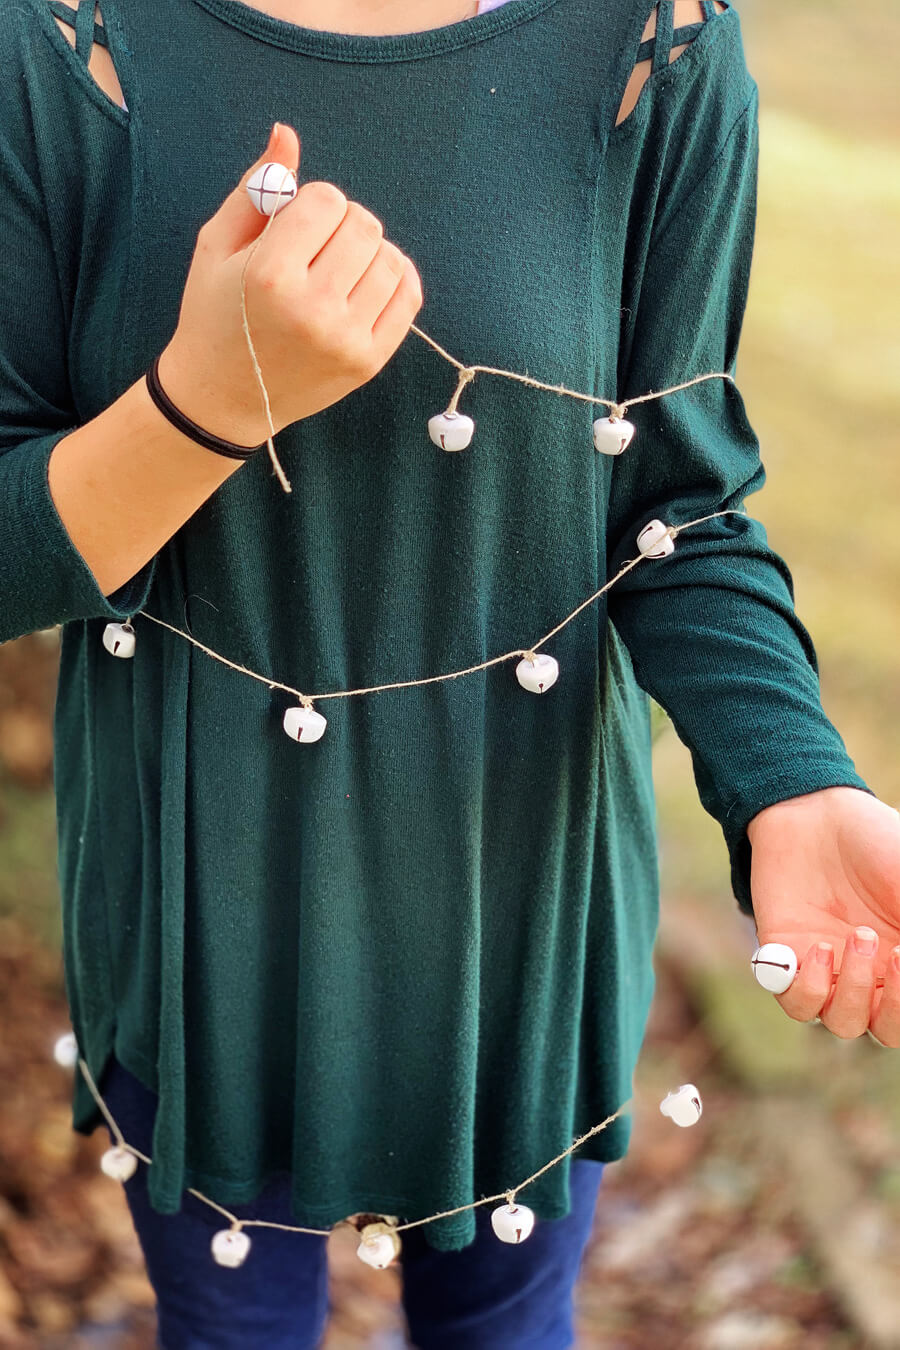 Jingle Bell Christmas Garland | Buy This Cook That